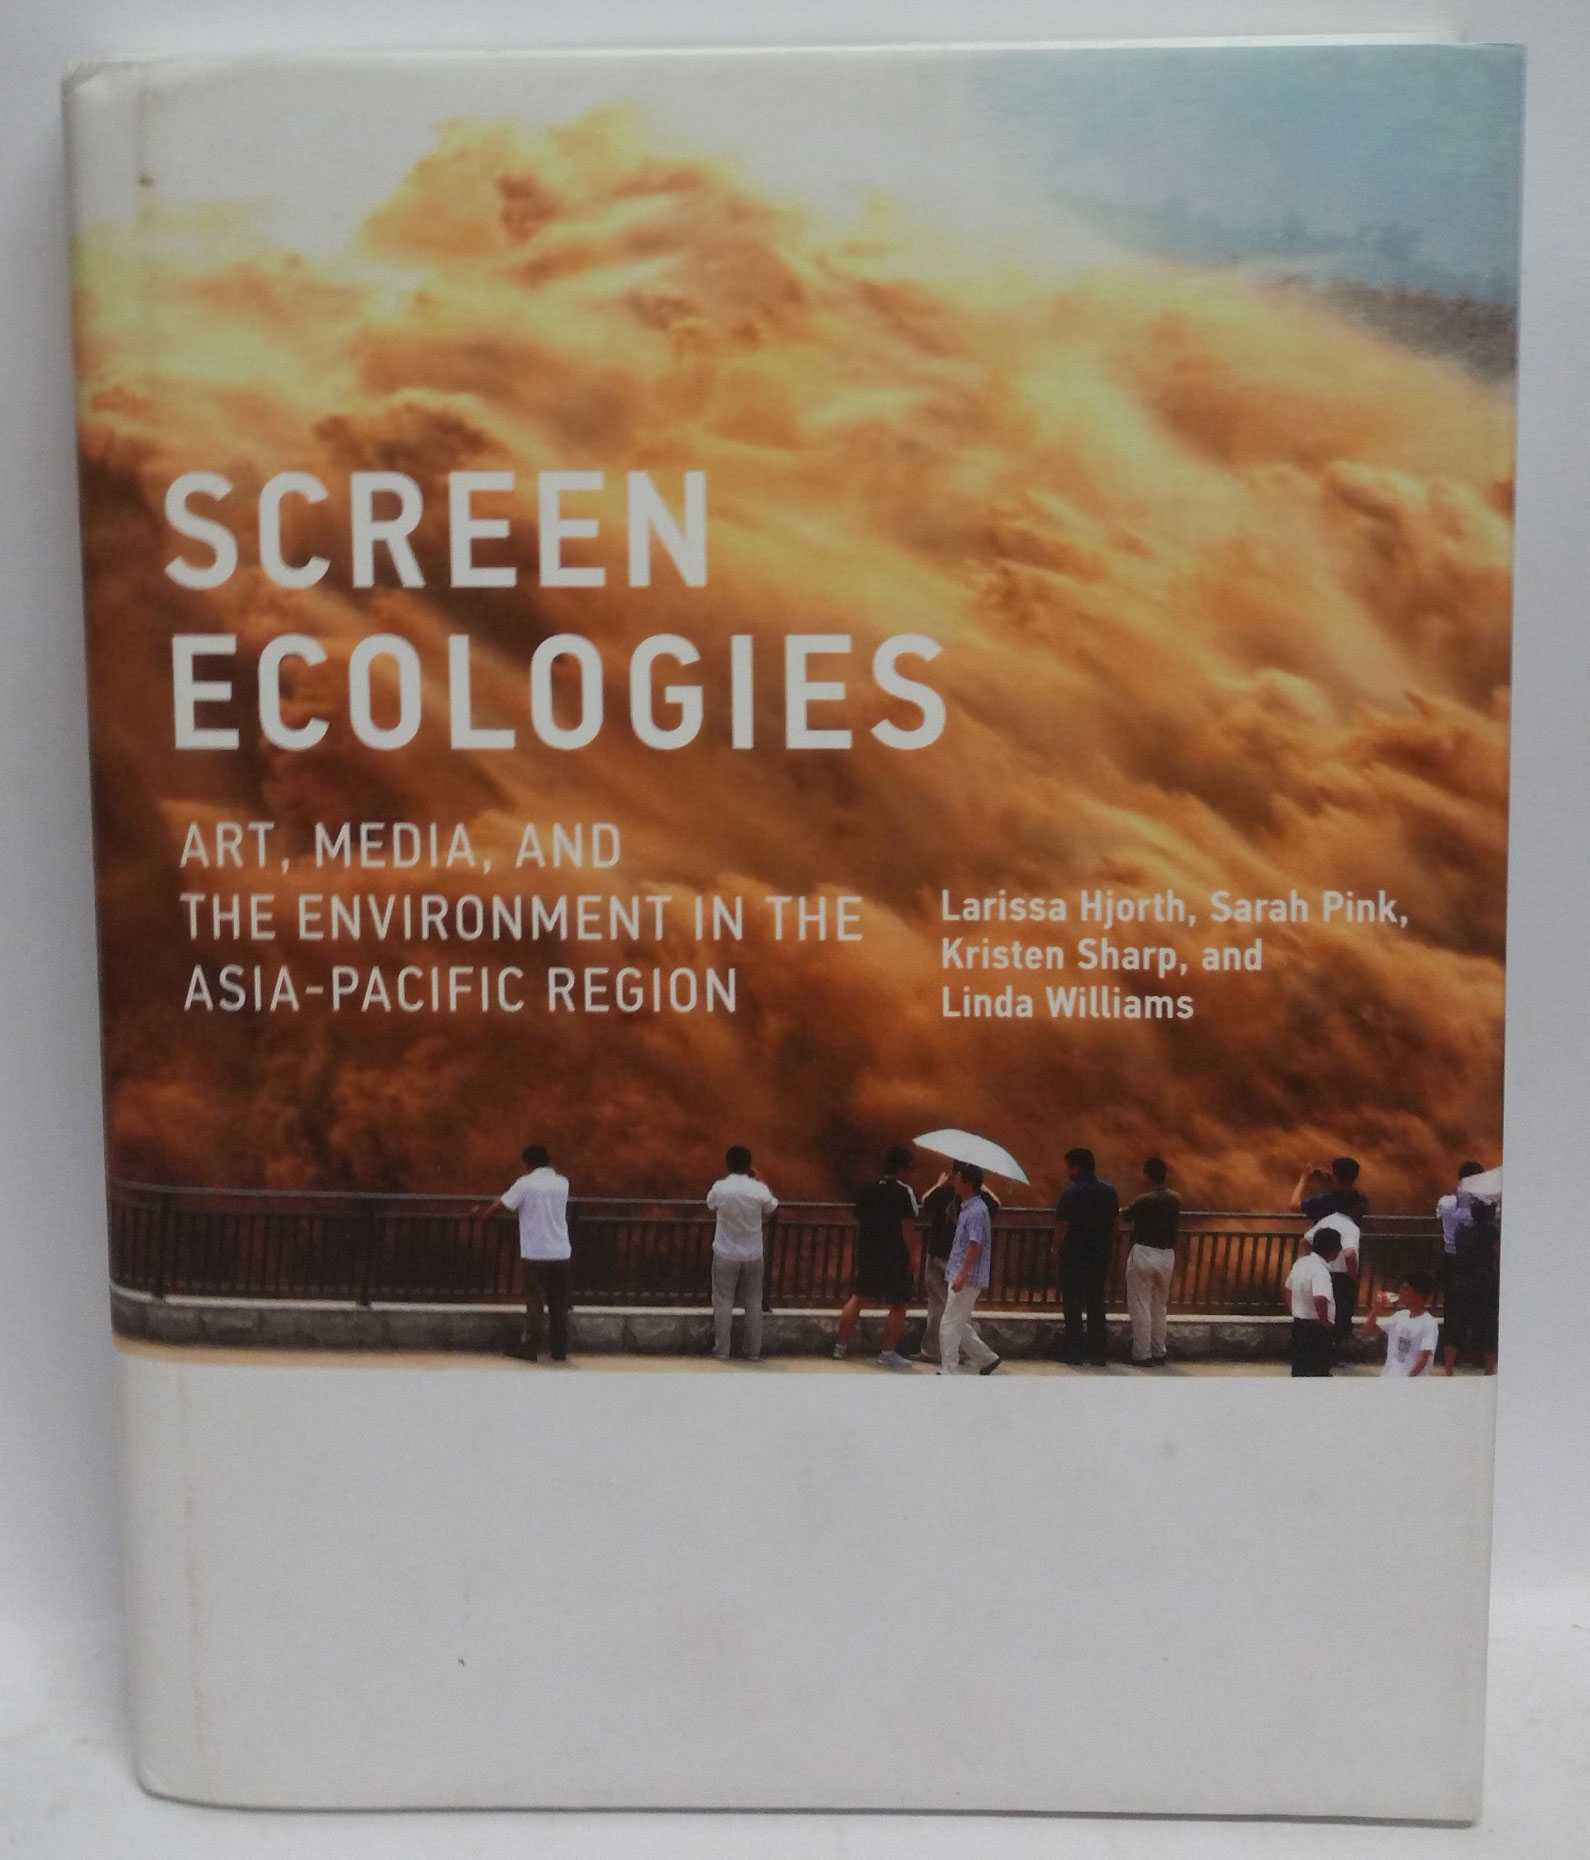 Screen Ecologies: Art, Media and the Environment in the Asia-Pacific Region